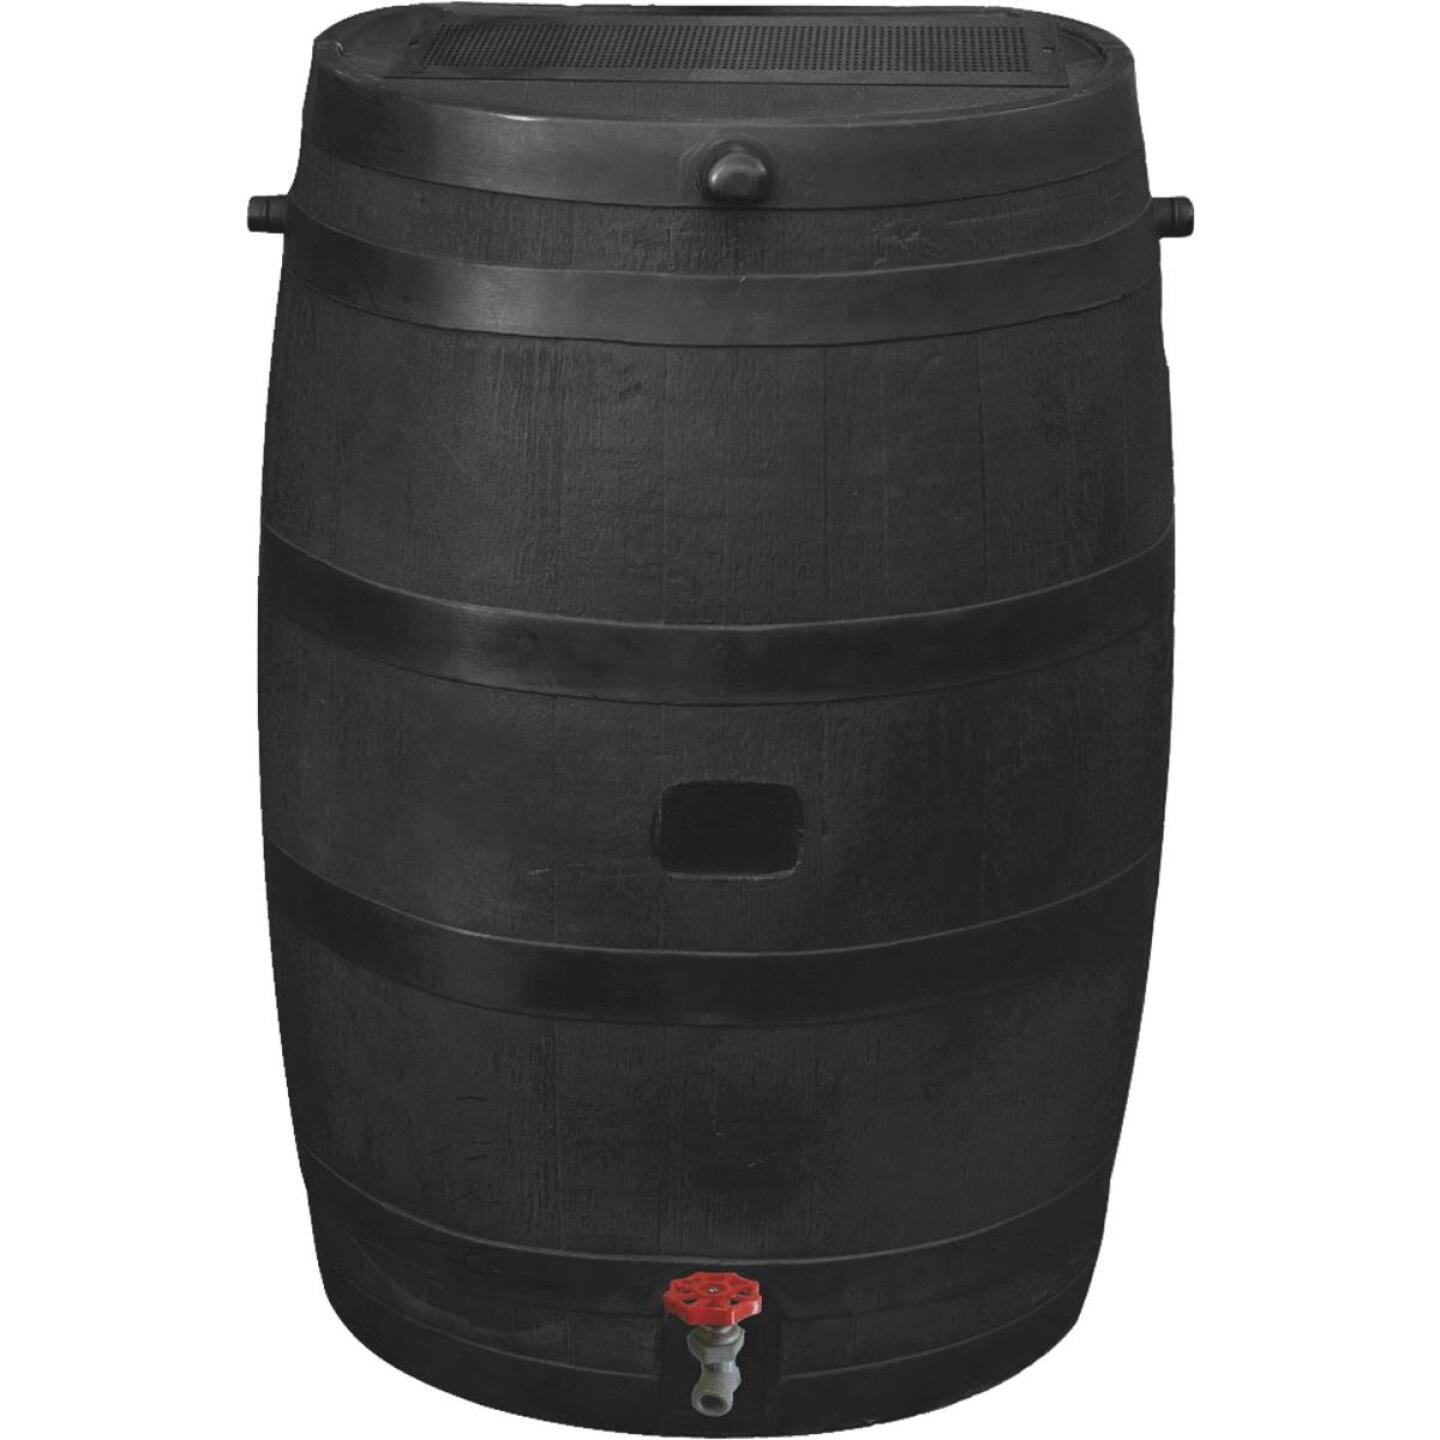 RTS Home Accents ECO 50 Gal. Black Recycled Polyethylene Rain Barrel Image 1